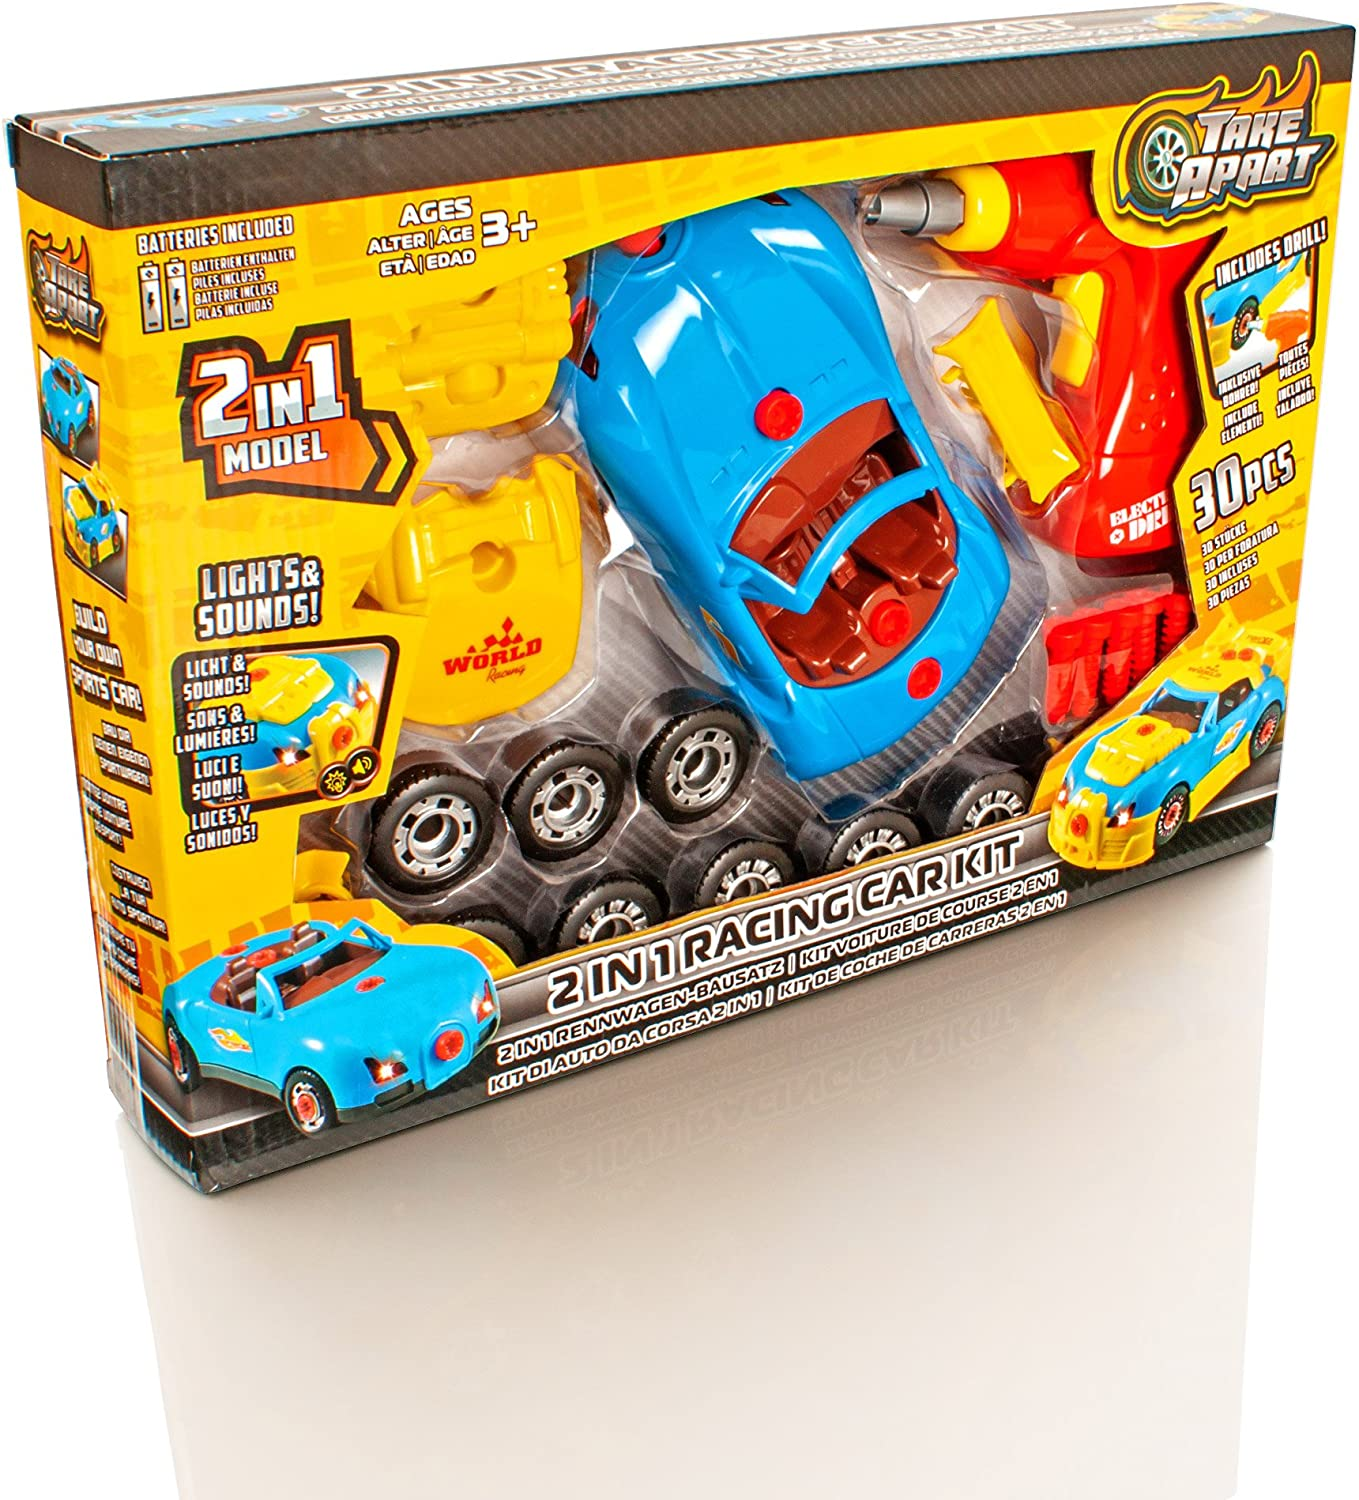 Assembly Take Apart Race Car Construction Toys Kit Tools Sounds Kids Funny Toy